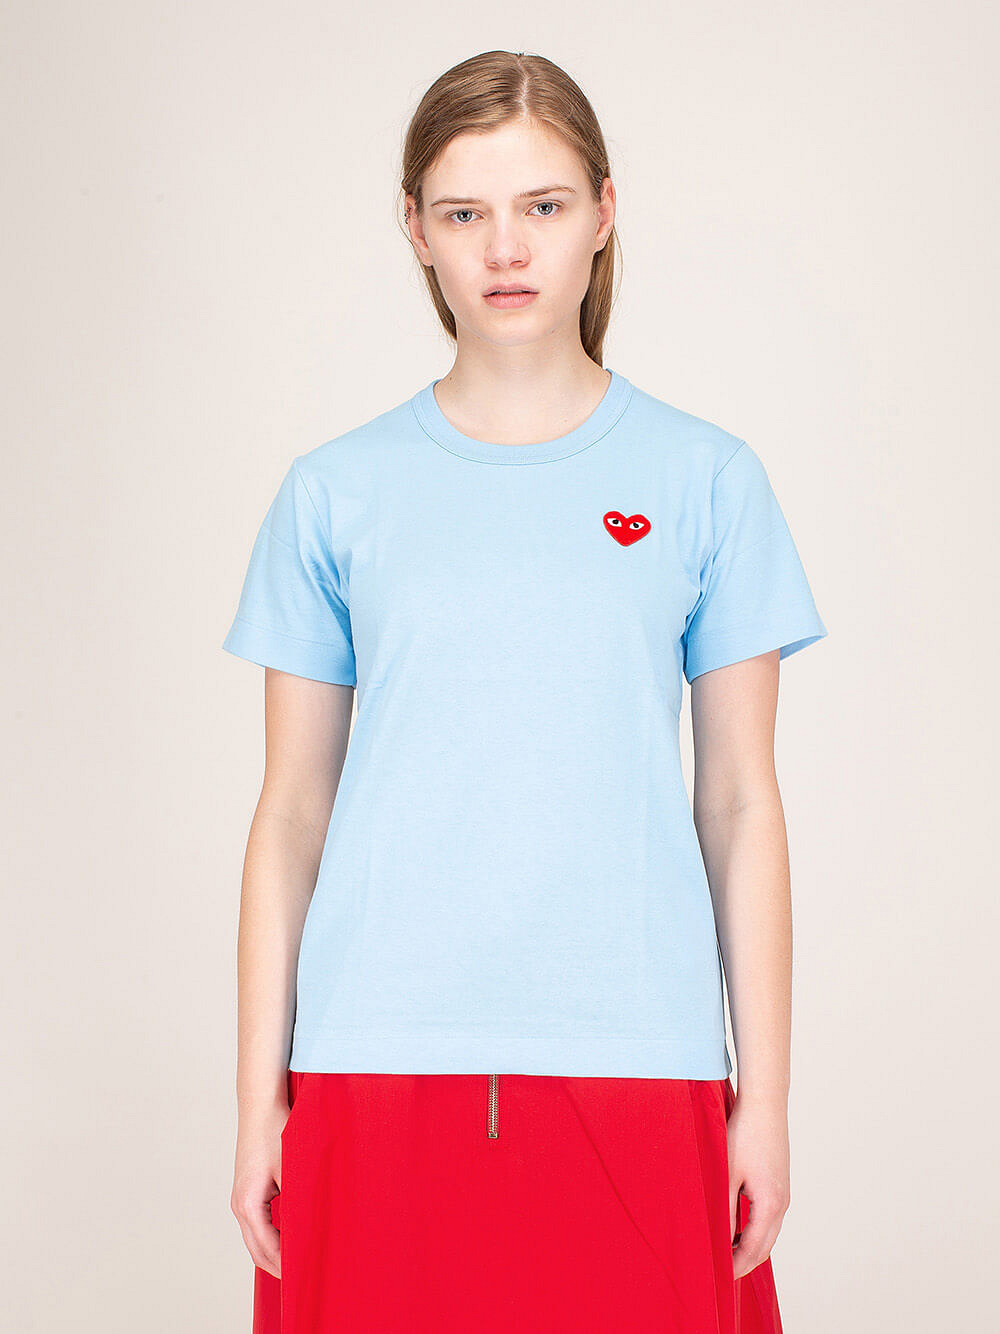 Ladies Tee Blue Red Heart